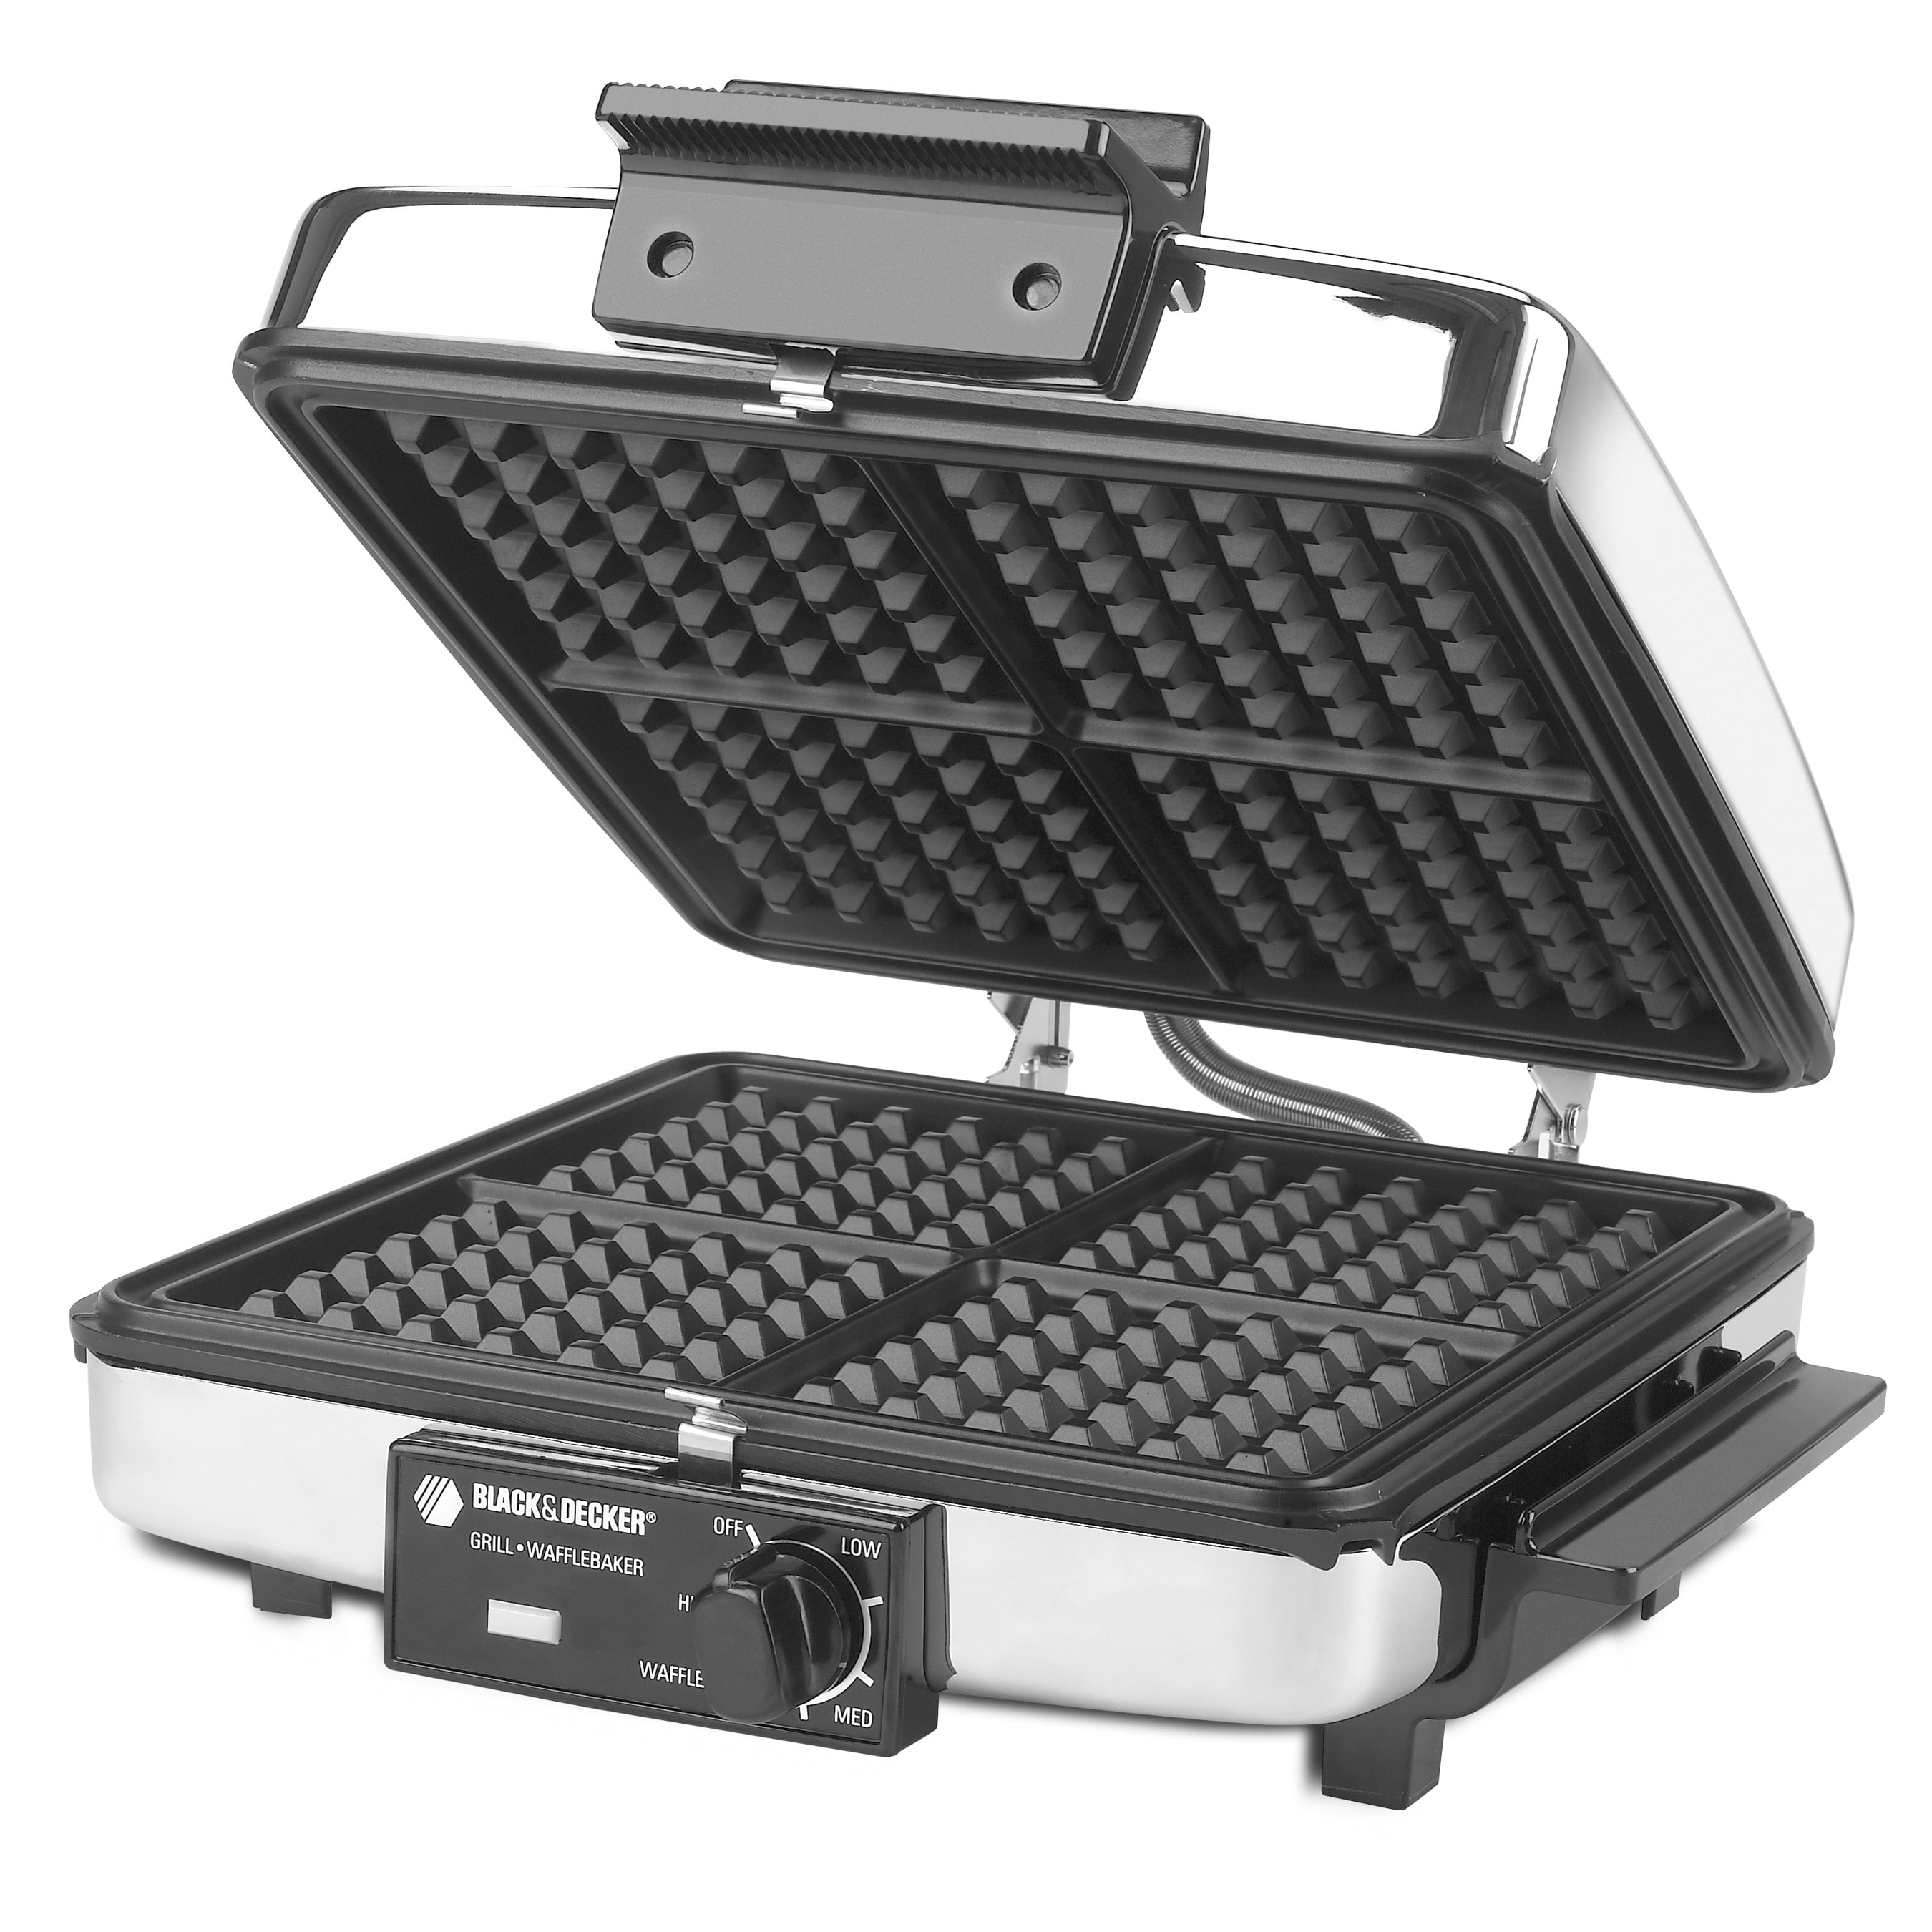 Black & Decker G48TD 3-in-1 Griddle and Waffle Maker (B&D Grill and Waffle Maker)